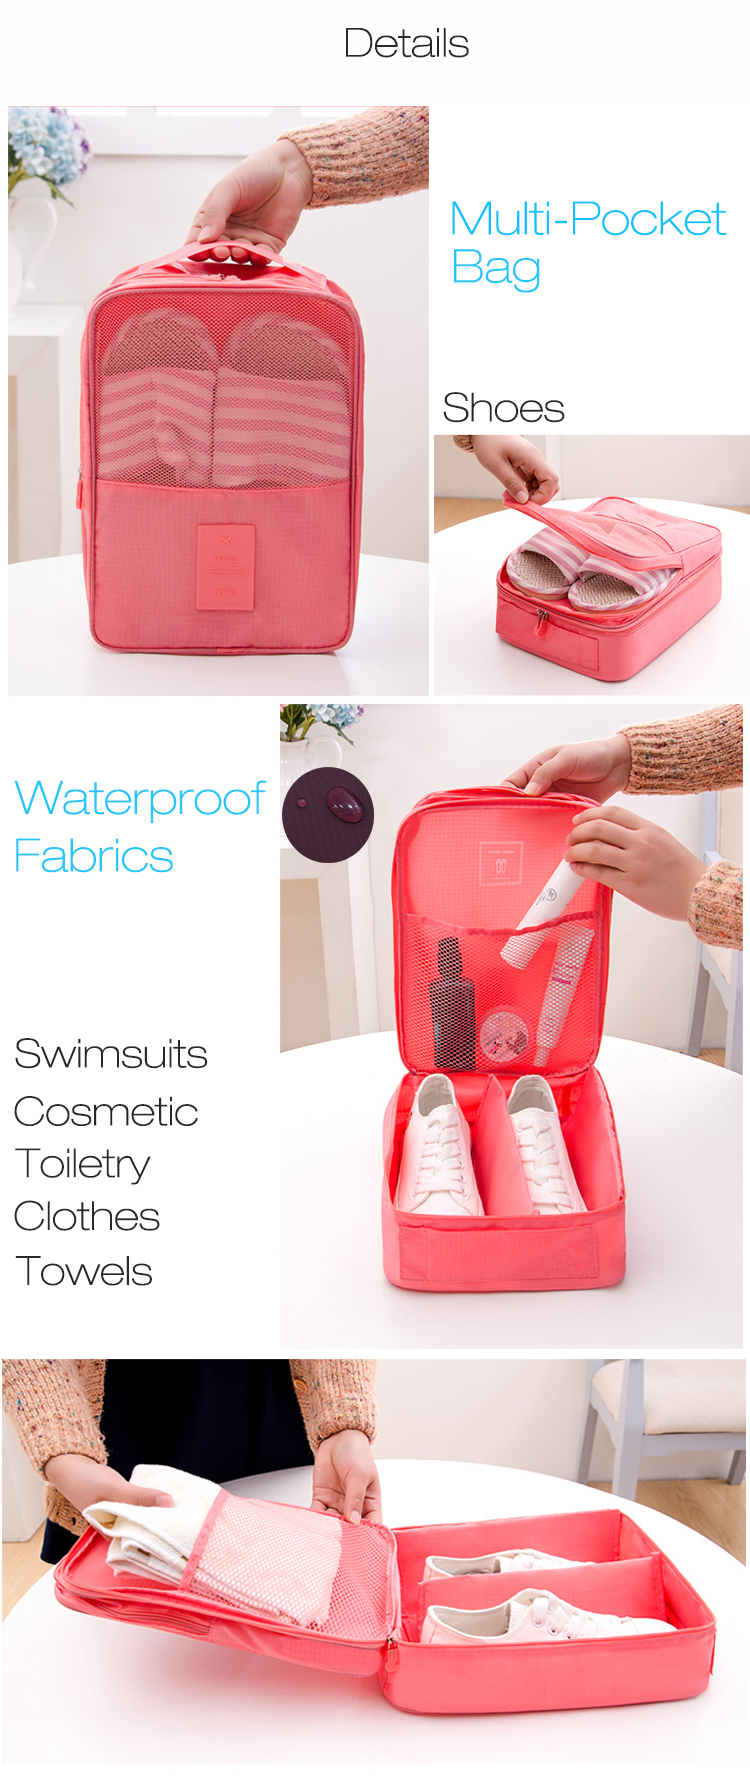 Honana HN-TB18 Travel Storage Bags Waterproof Portable Shoes Box Pouch Organizer Bag Cube Fashion